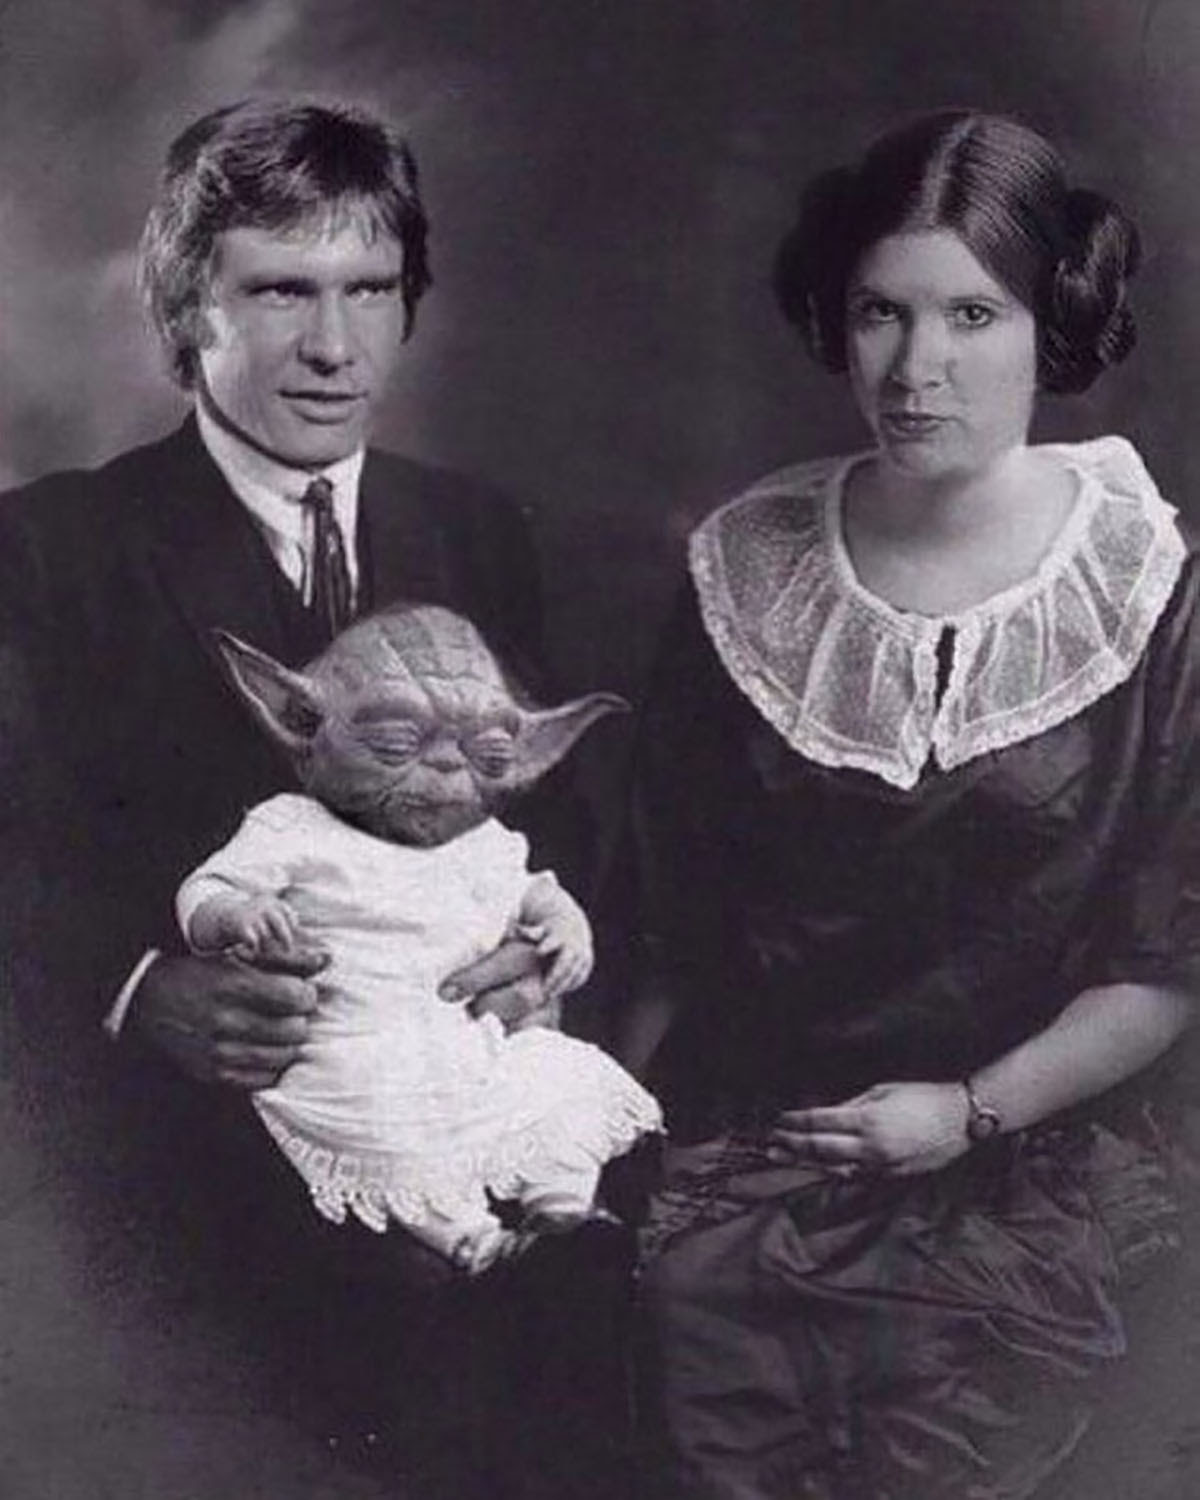 photoshopped image of harrison ford and carrie fisher